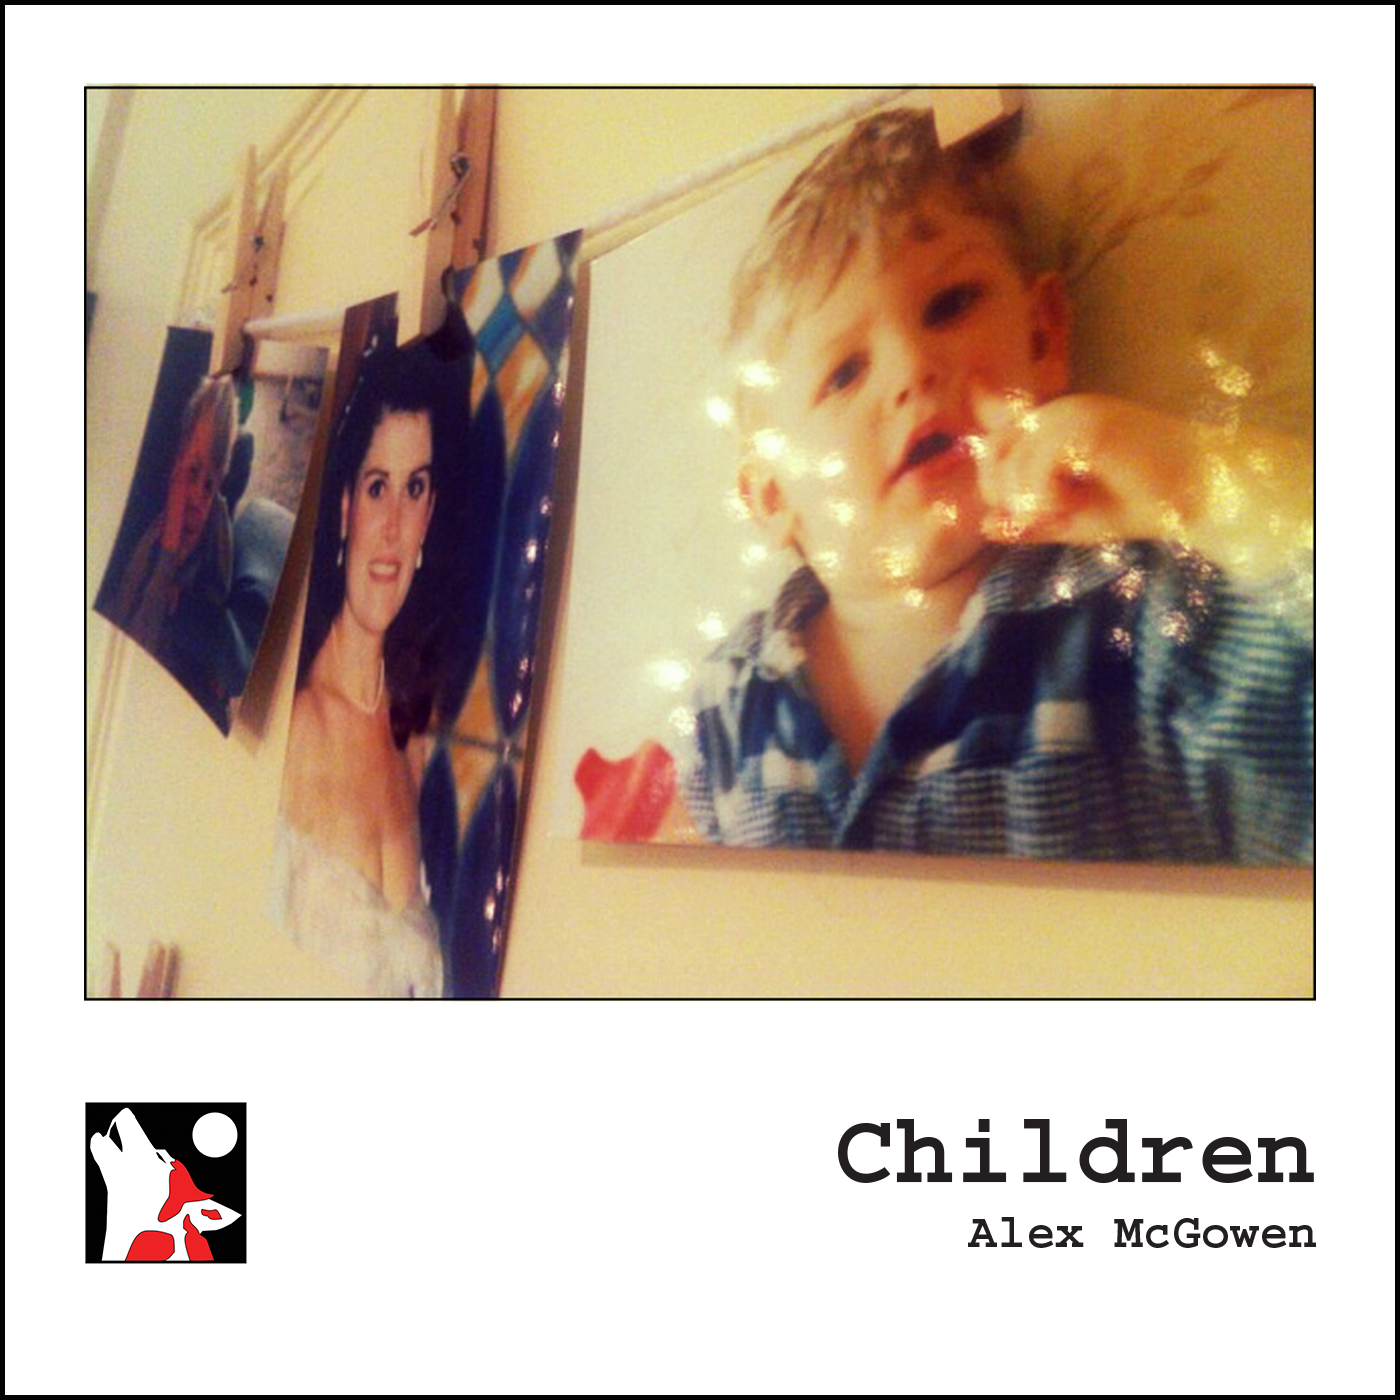 Children by Alex McGowen